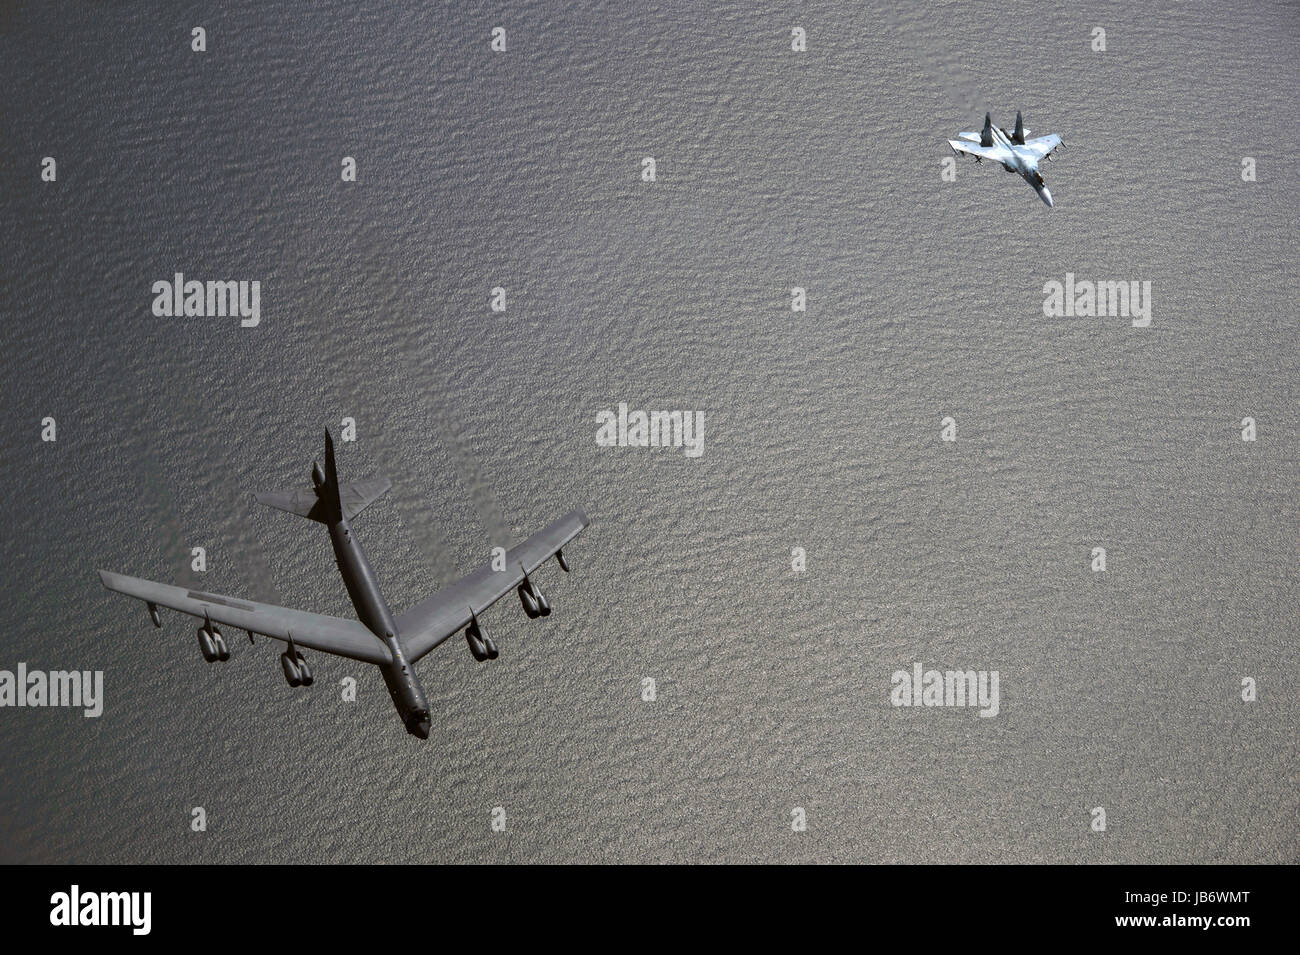 Baltic Sea. 09th June, 2017. A U.S. Air Force B-52H bomber, left, from the 2nd Bomb Wing is intercepted by a Russian - Stock Image